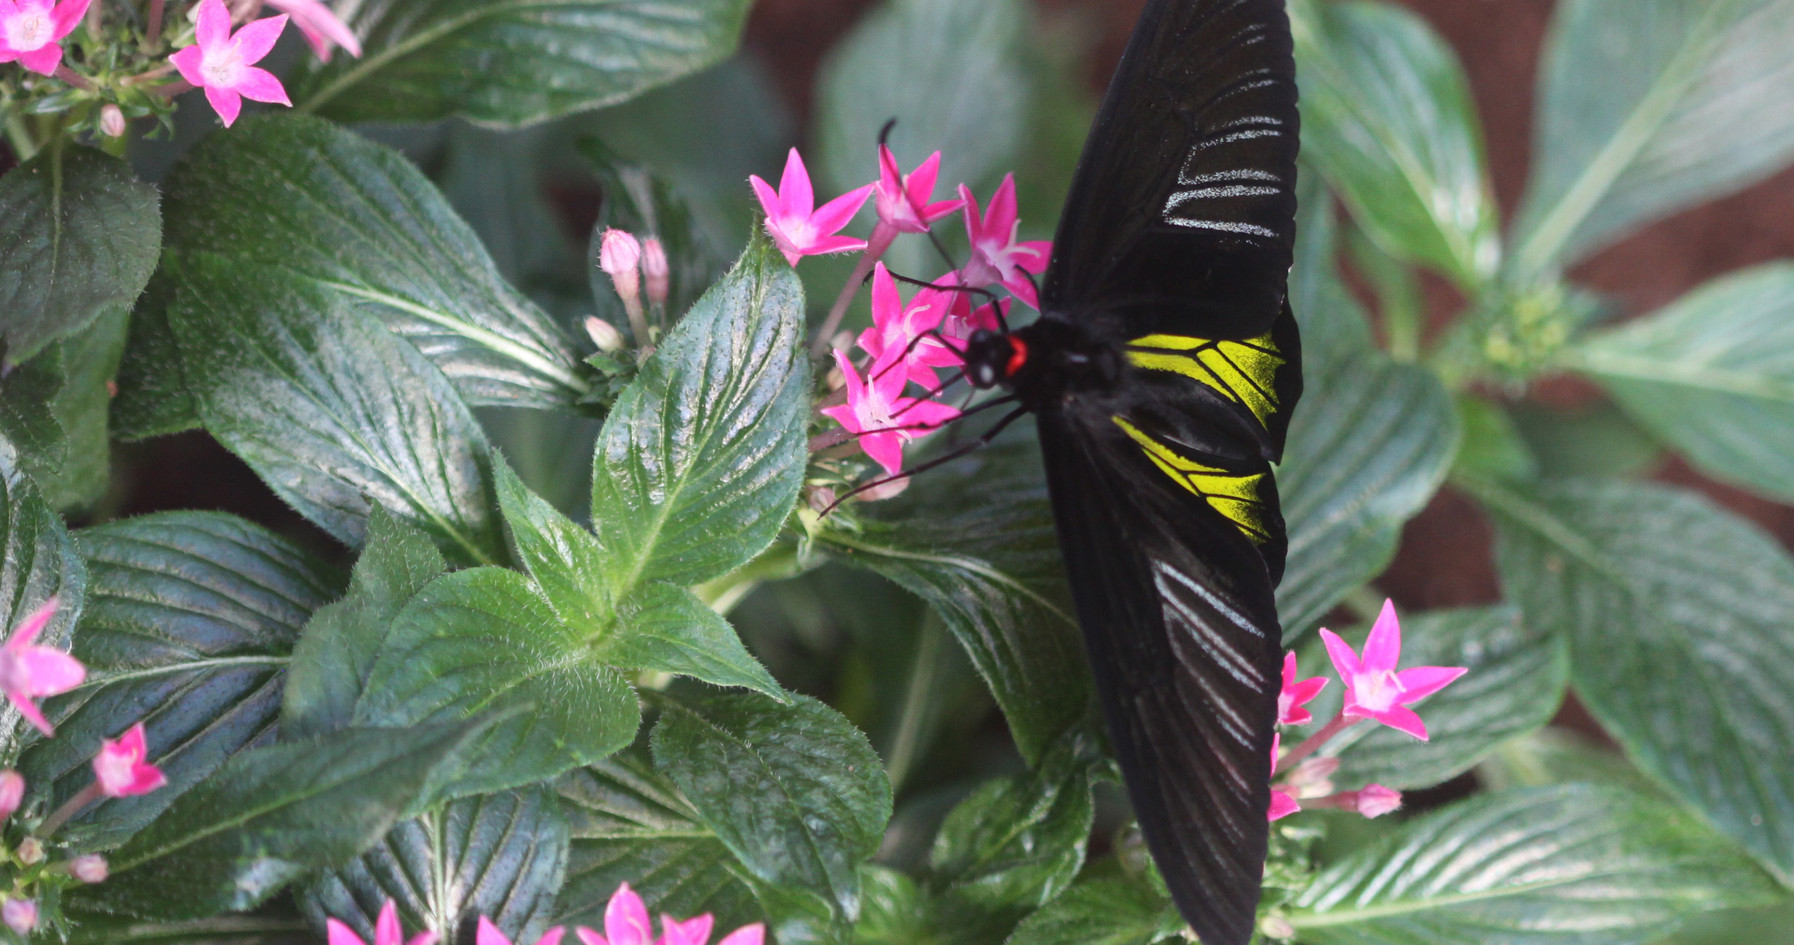 A Common Birdwing At Rest